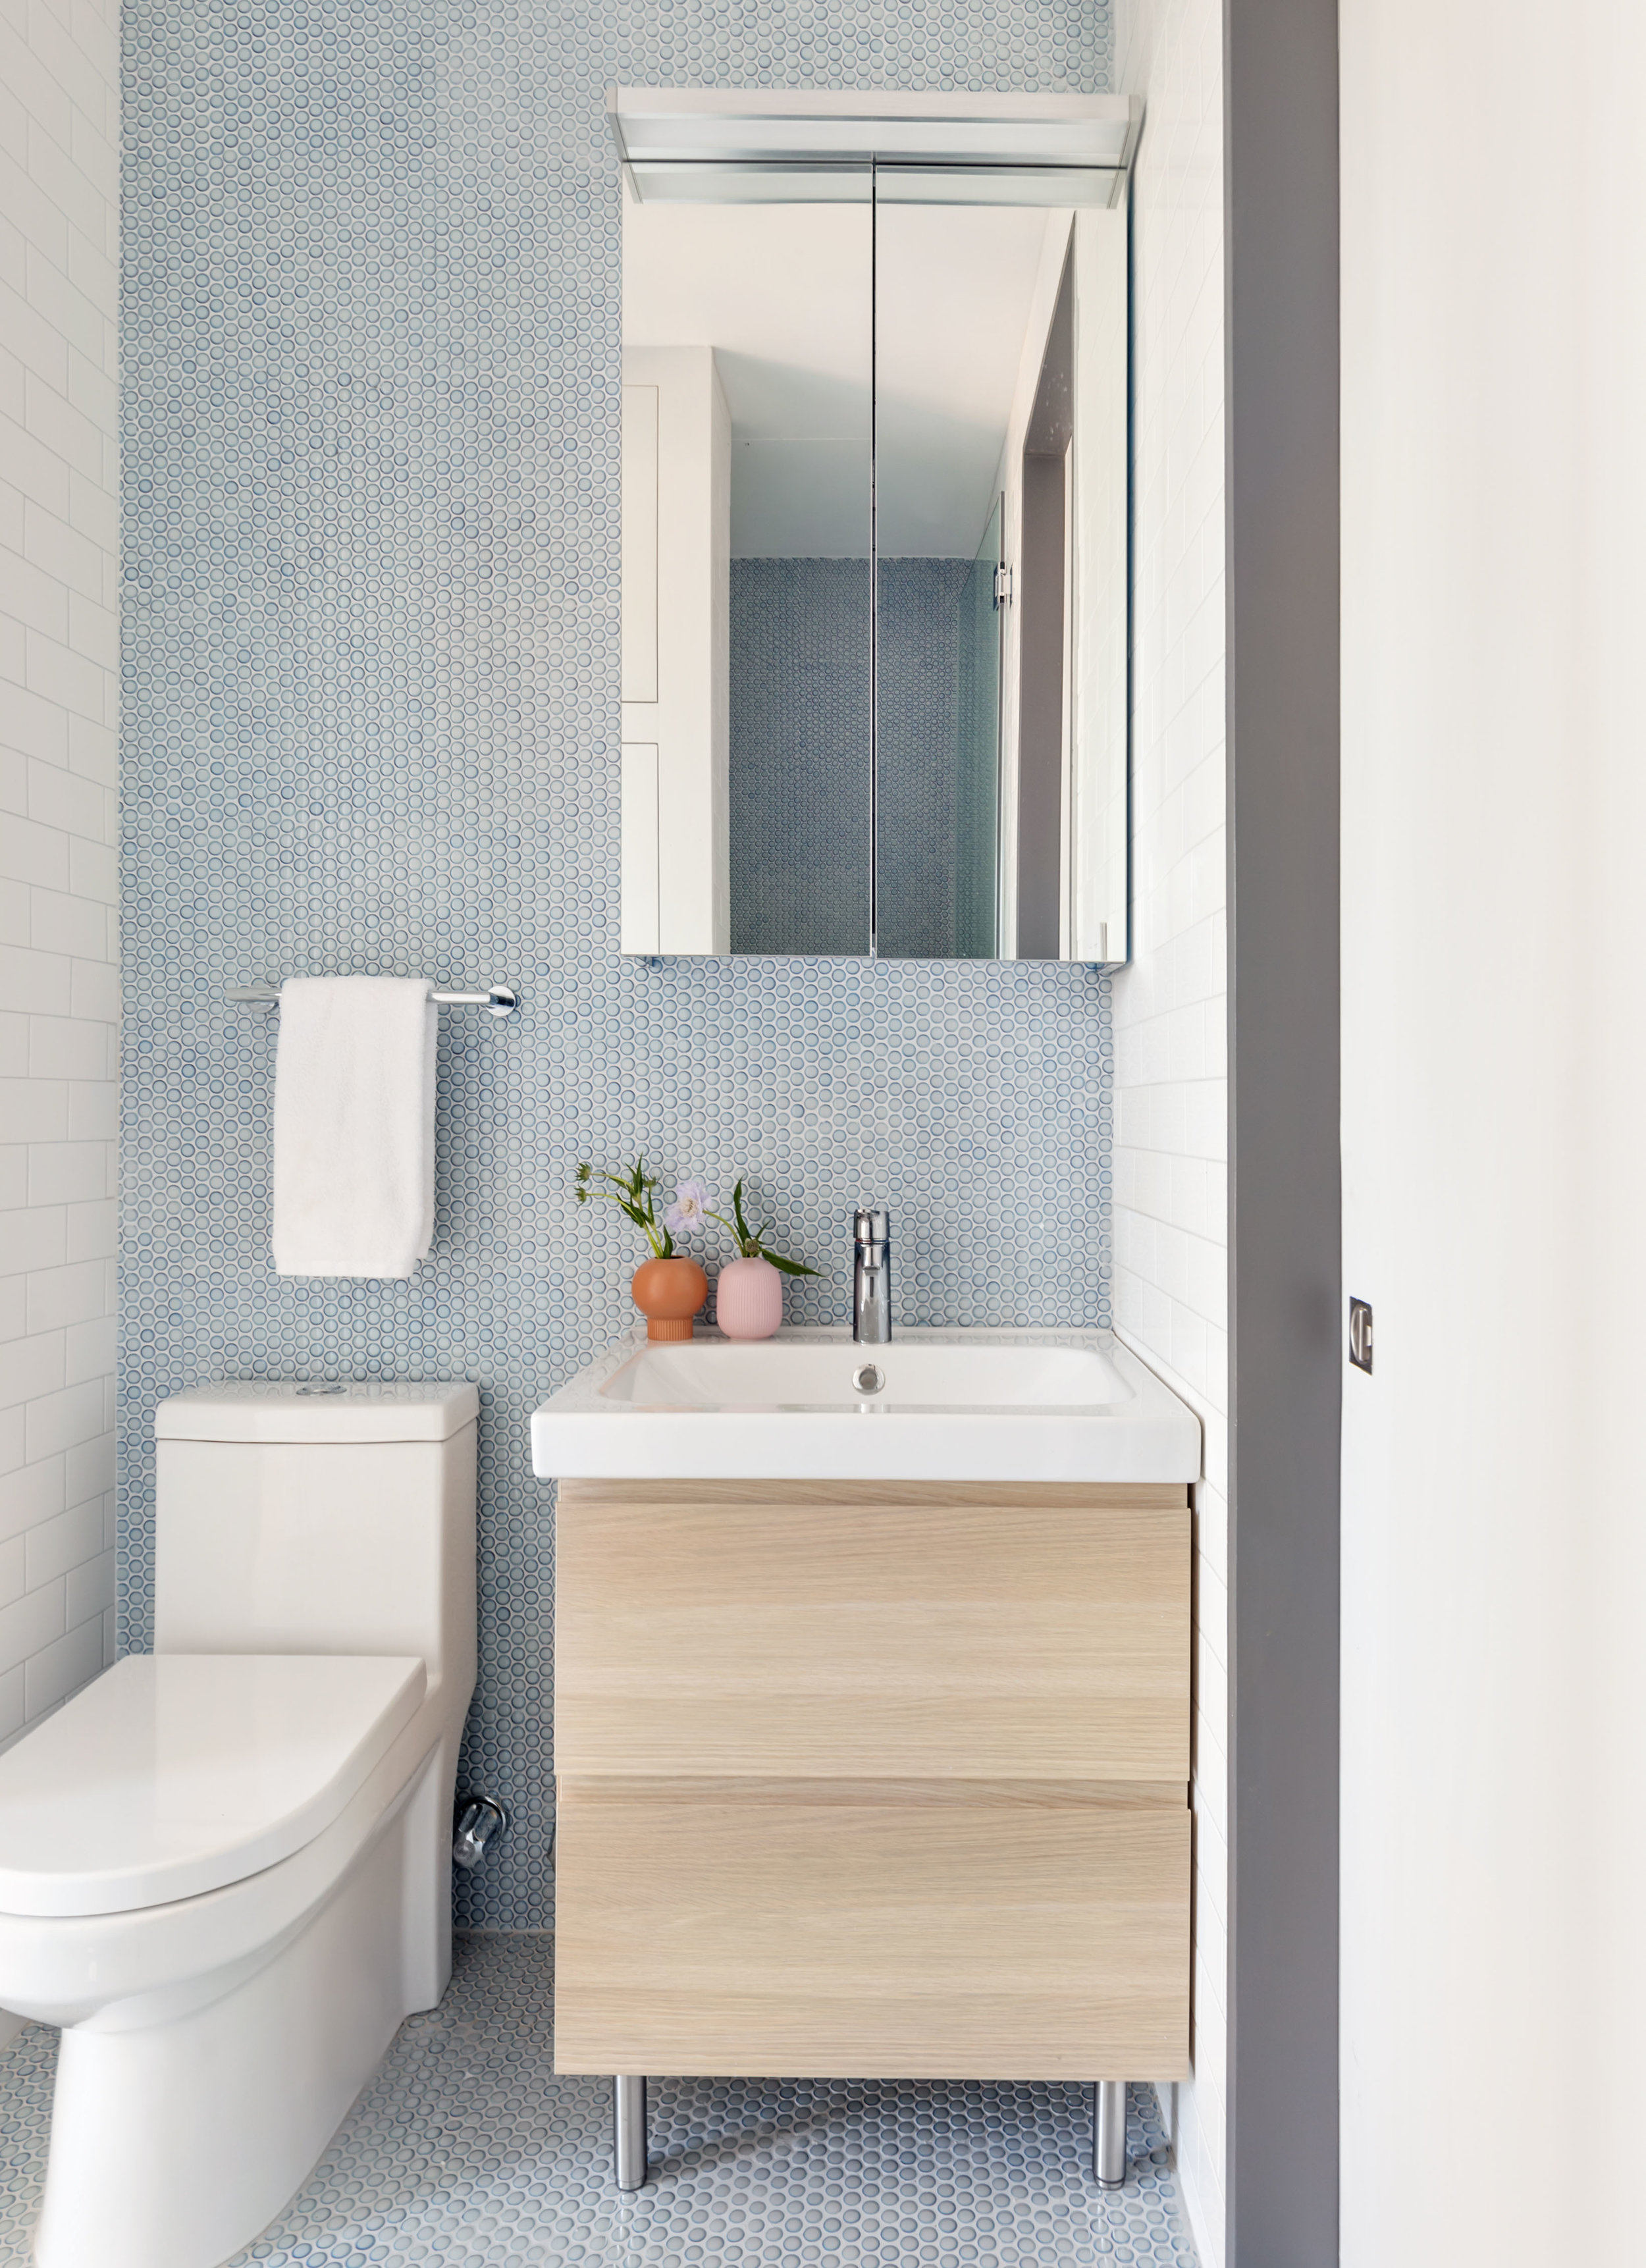 Guest bathroom with blue penny tile walls and floor.